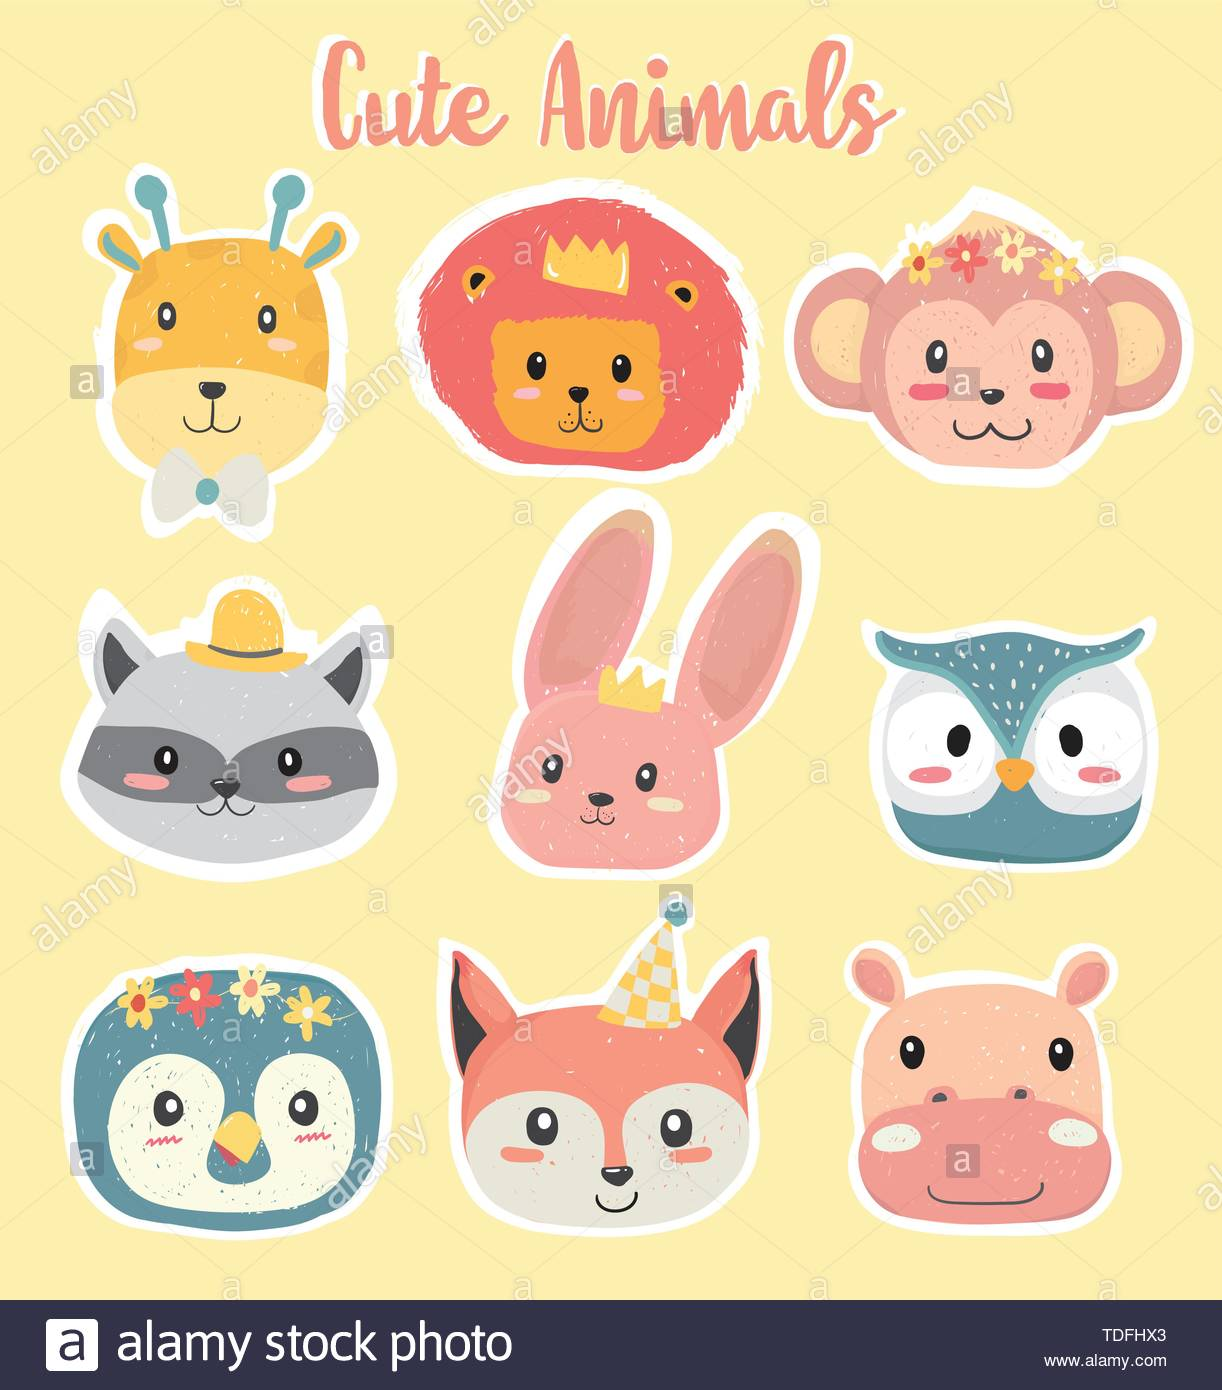 cute hand drawing animal head clipart icon in pastel color.